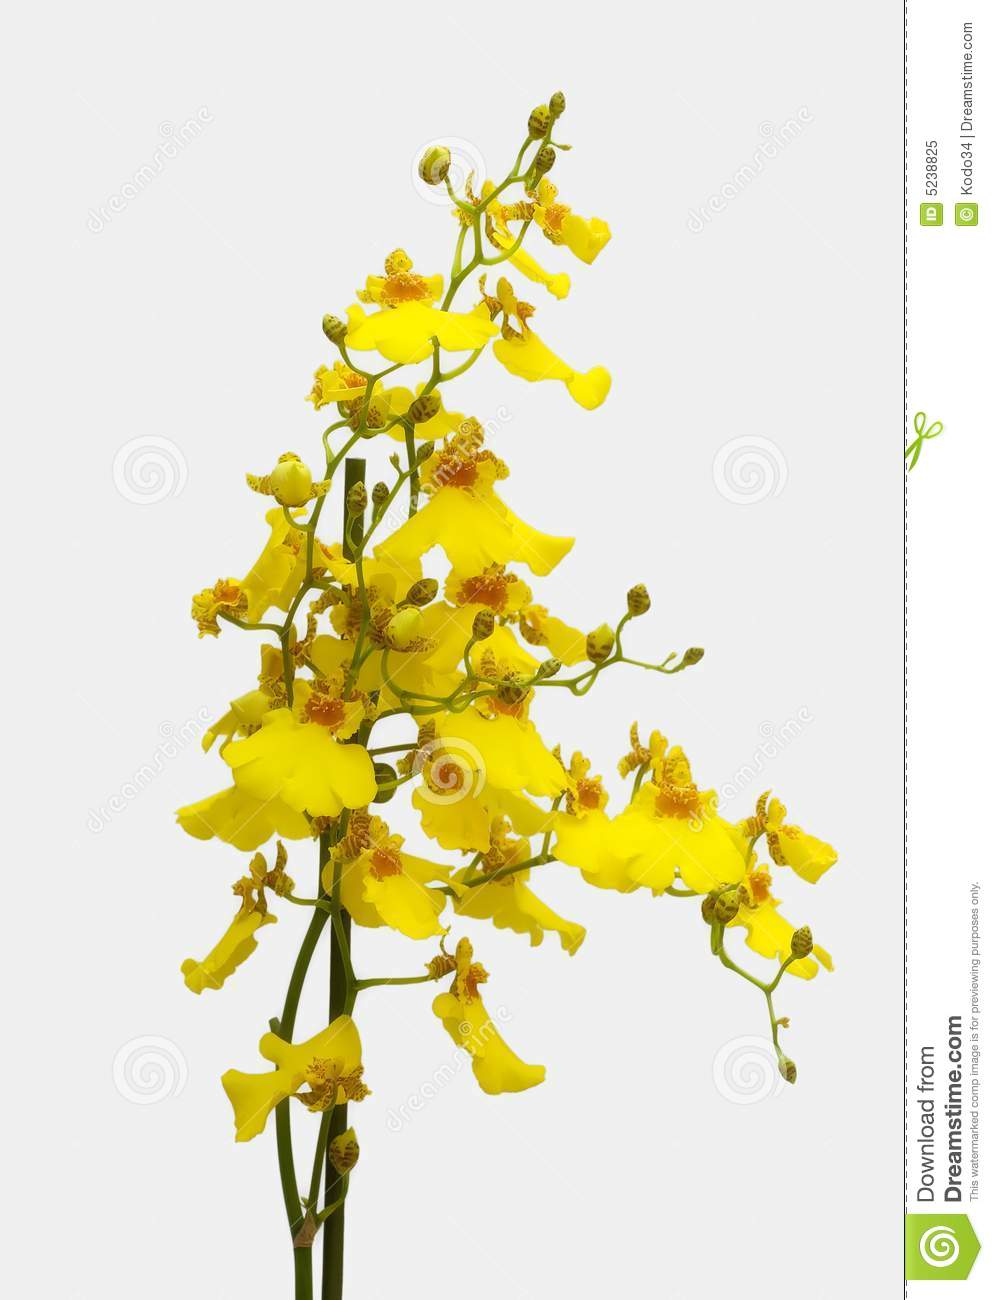 yellow orchid stock image image of small isolated